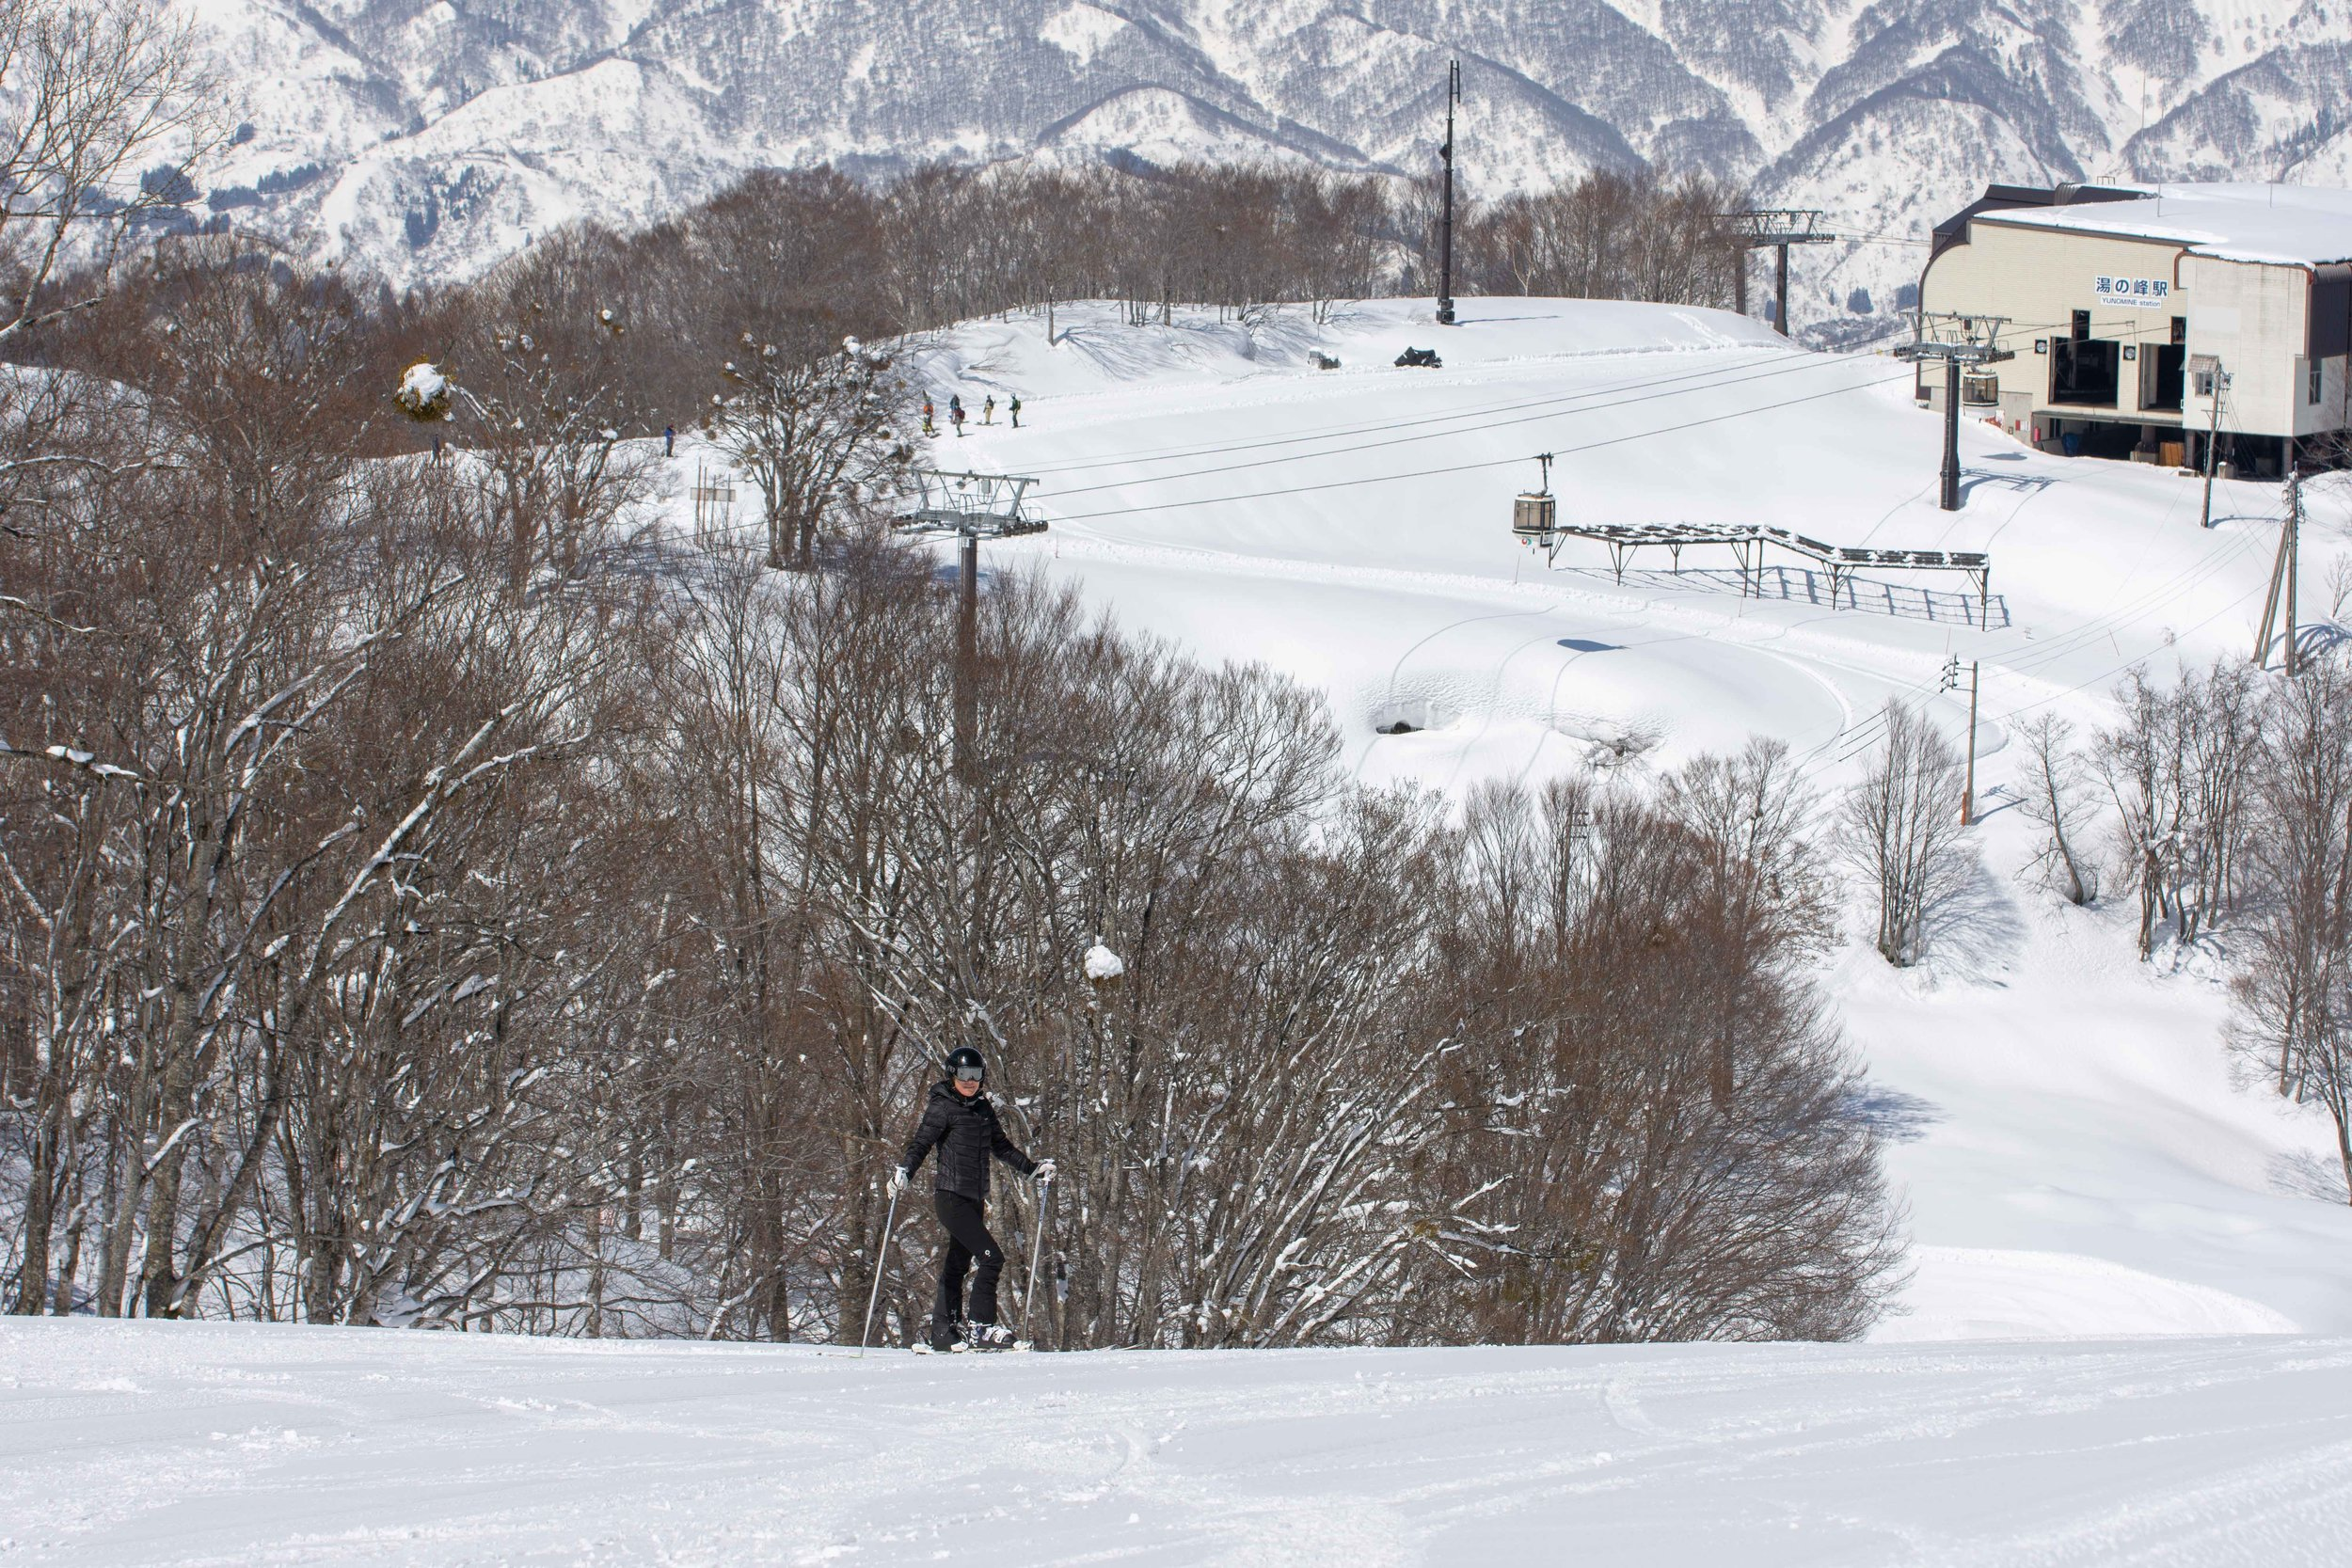 Nozawa Onsen Ski Guiding and Photography Services